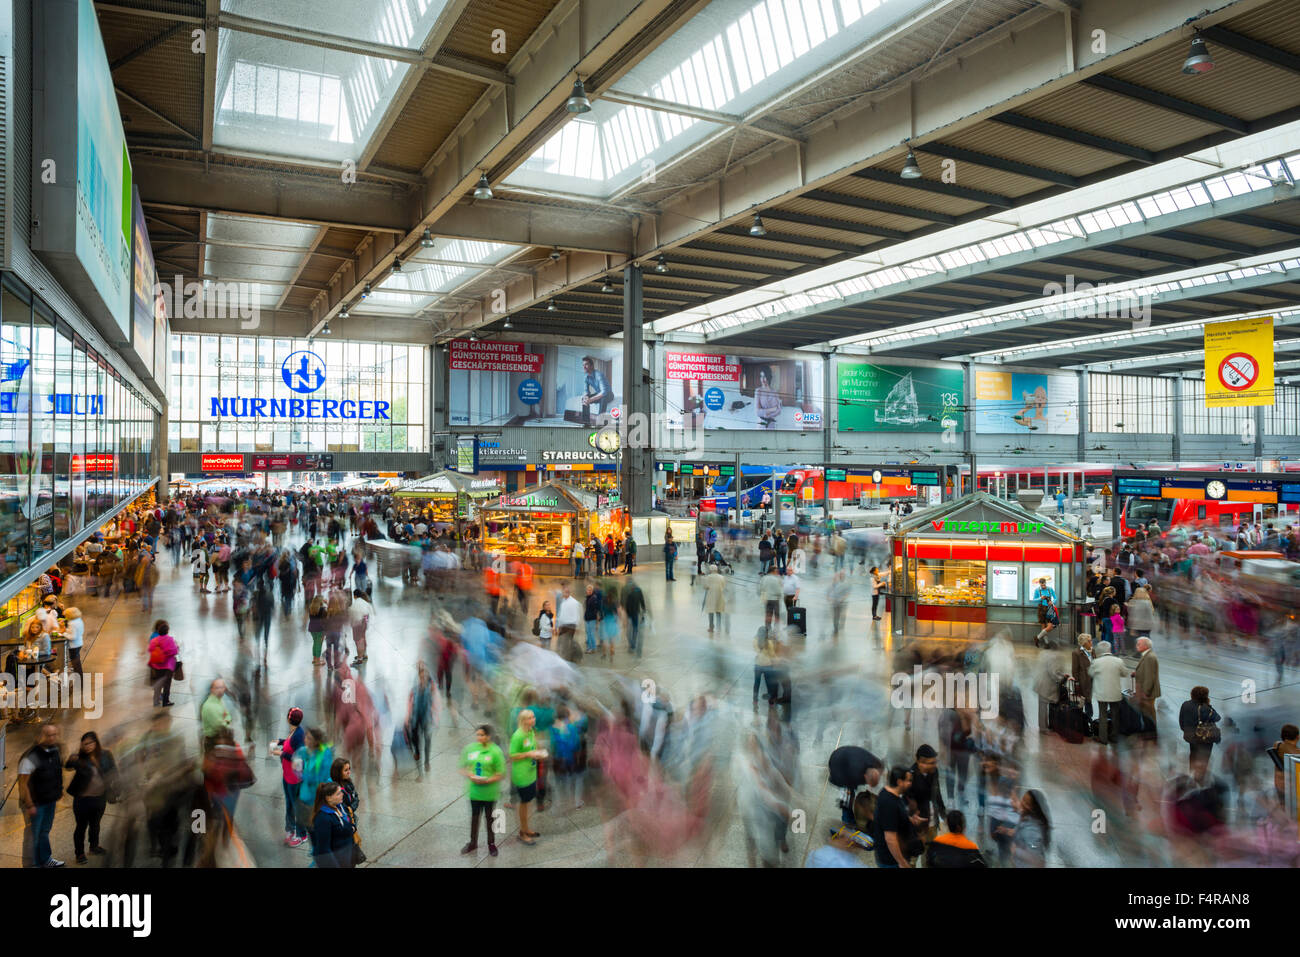 Railway station, railway station hall, blur, Germany, haste, Europe, central station, hectic rush, long time exposure, - Stock Image